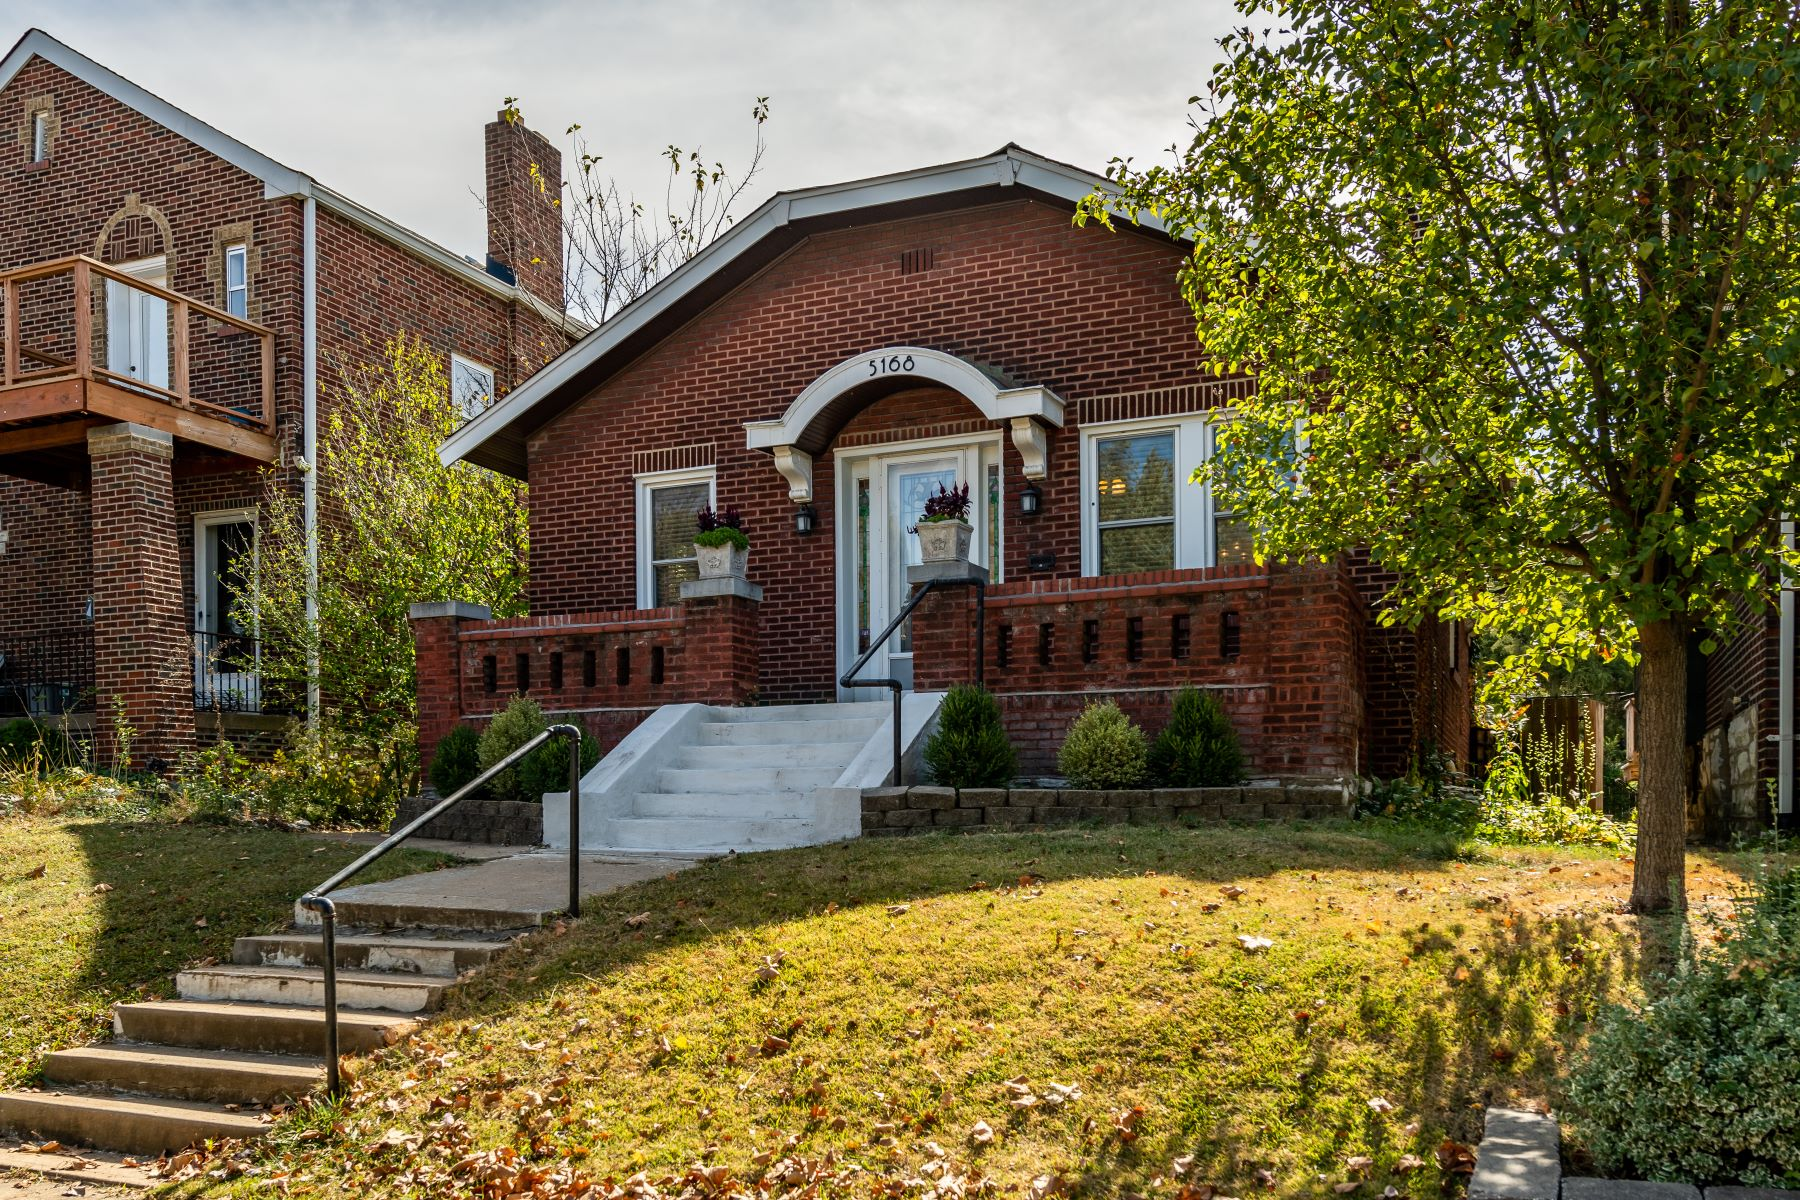 Property for Sale at Urban Bungalow Move-In Ready 5168 Goethe Avenue St. Louis, Missouri 63109 United States